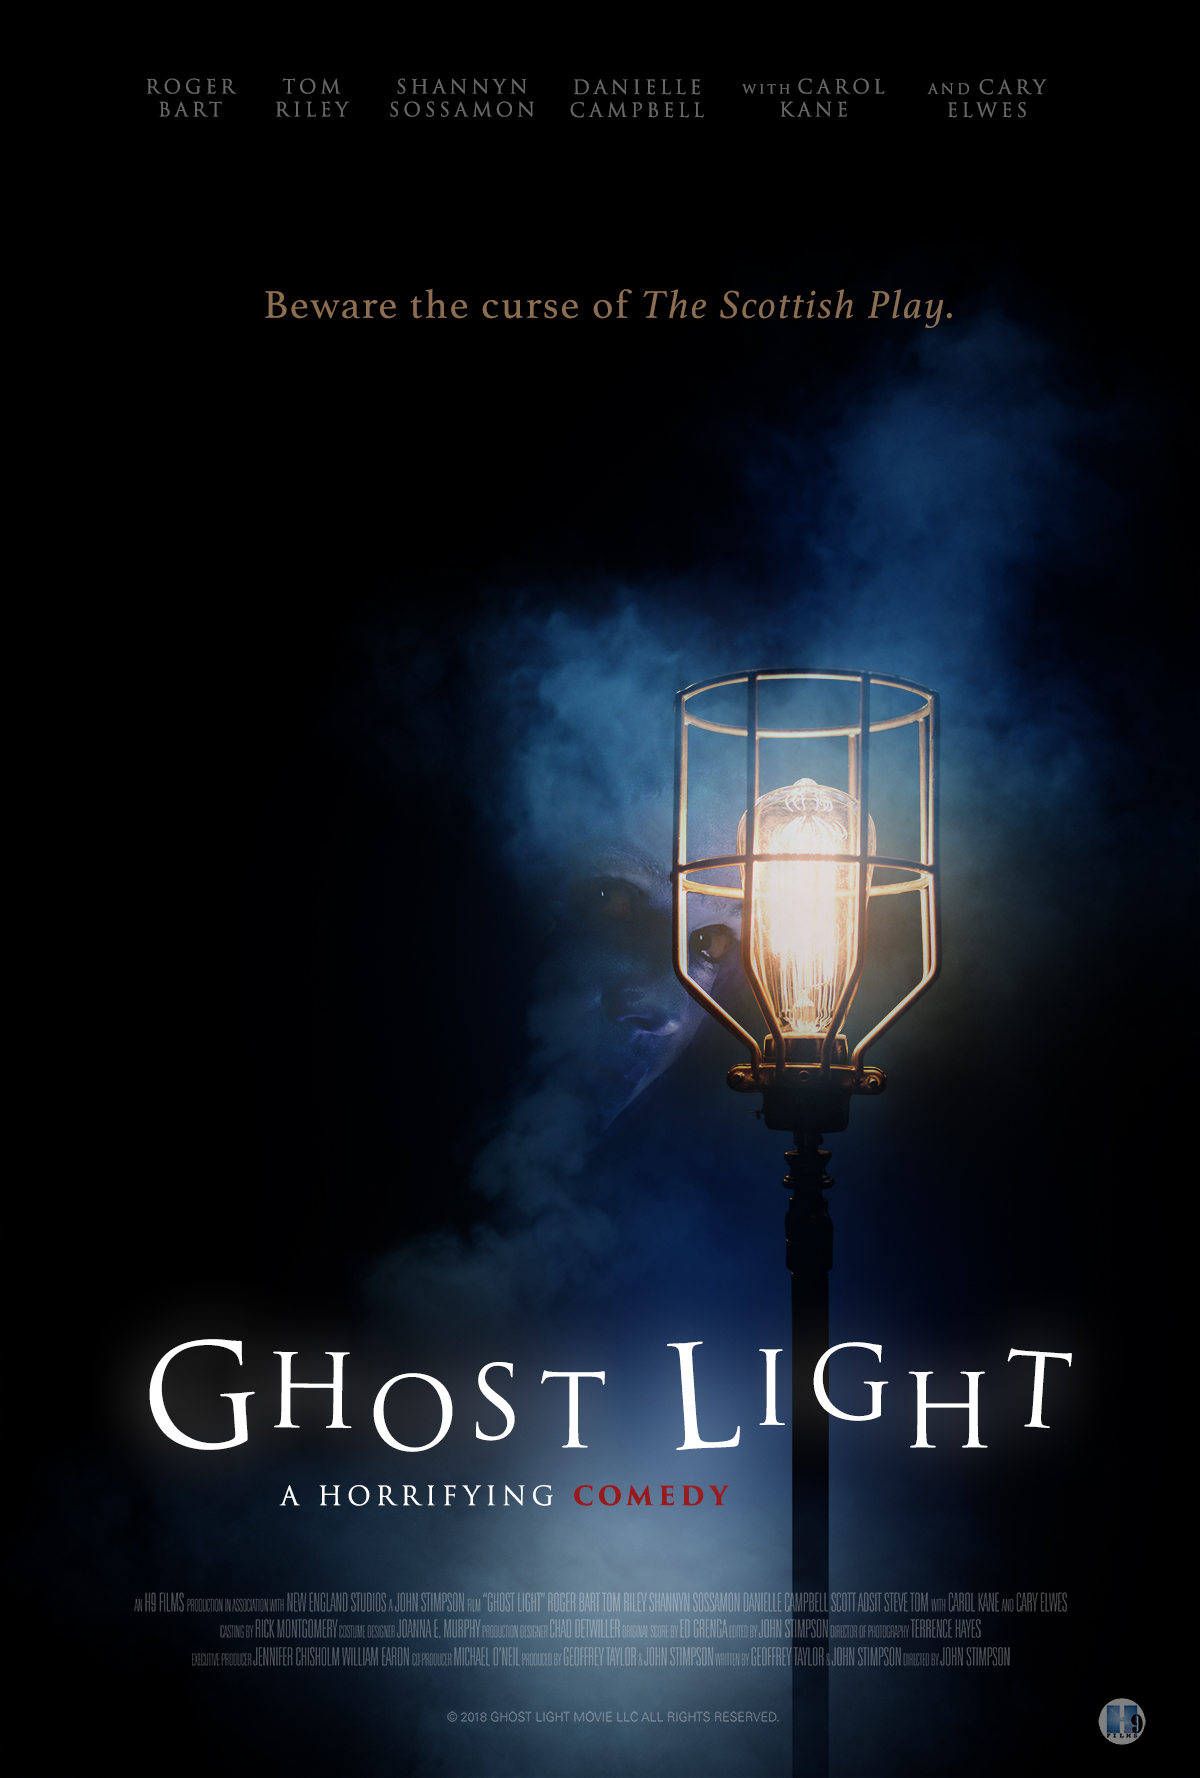 08818_ghostlight_posterJCS FLAT SMALL.jpg